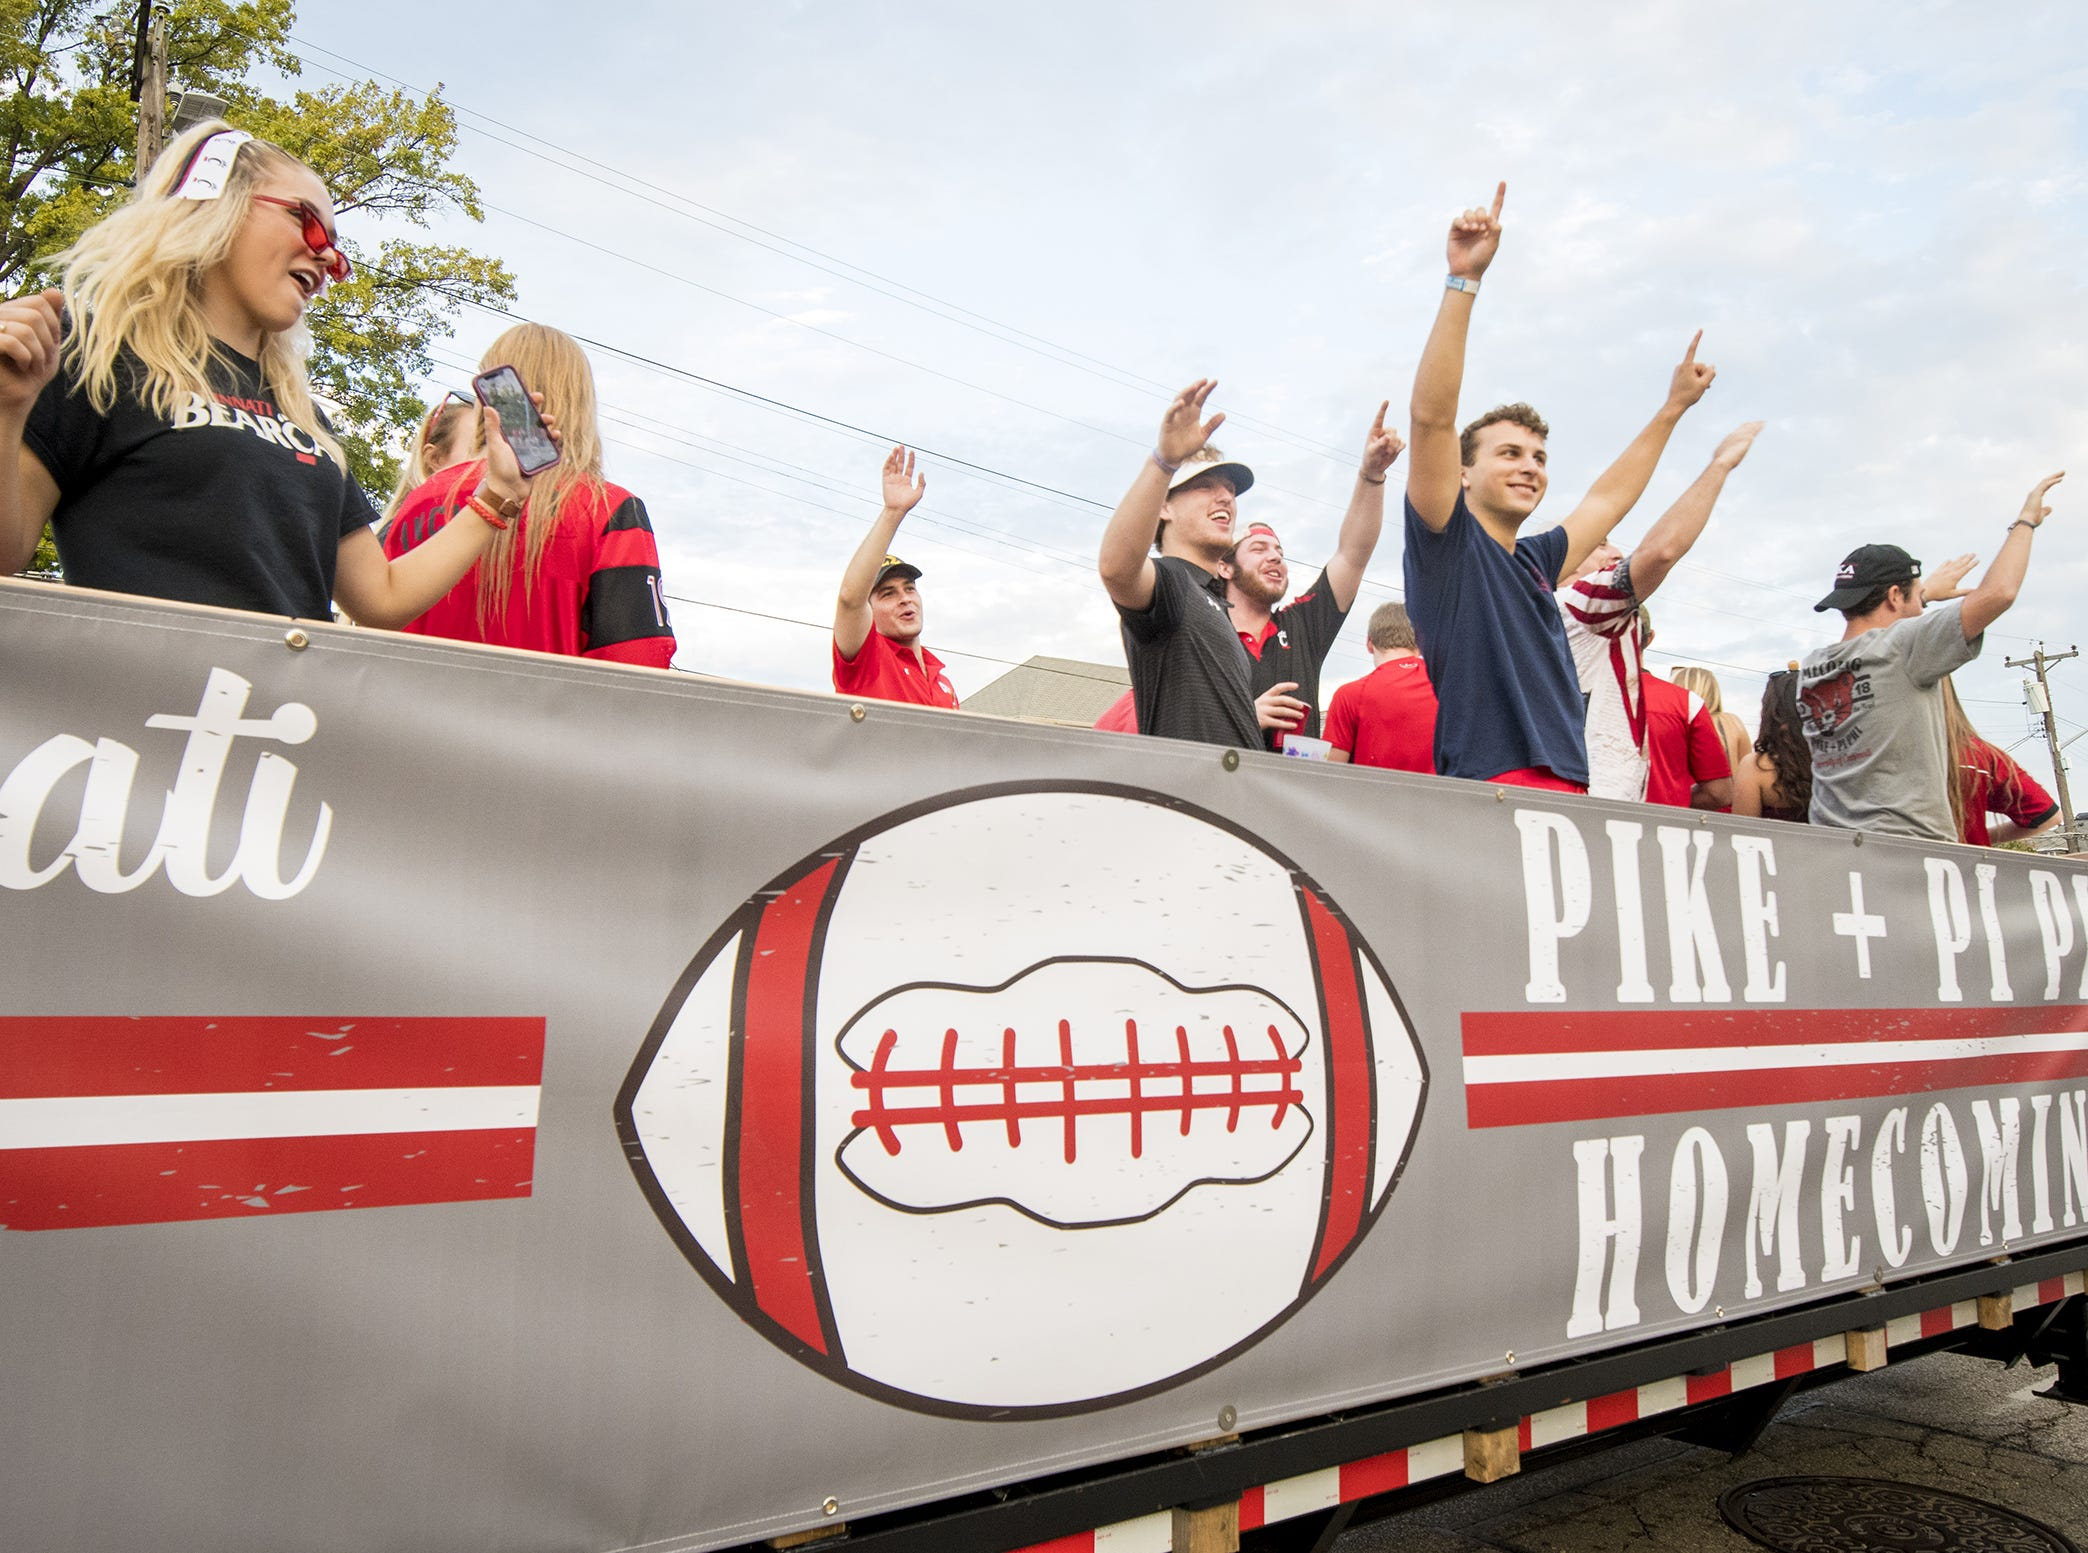 The Pike and Pi Phi float heads down Clifton Avenue during the annual University of Cincinnati Homecoming parade.